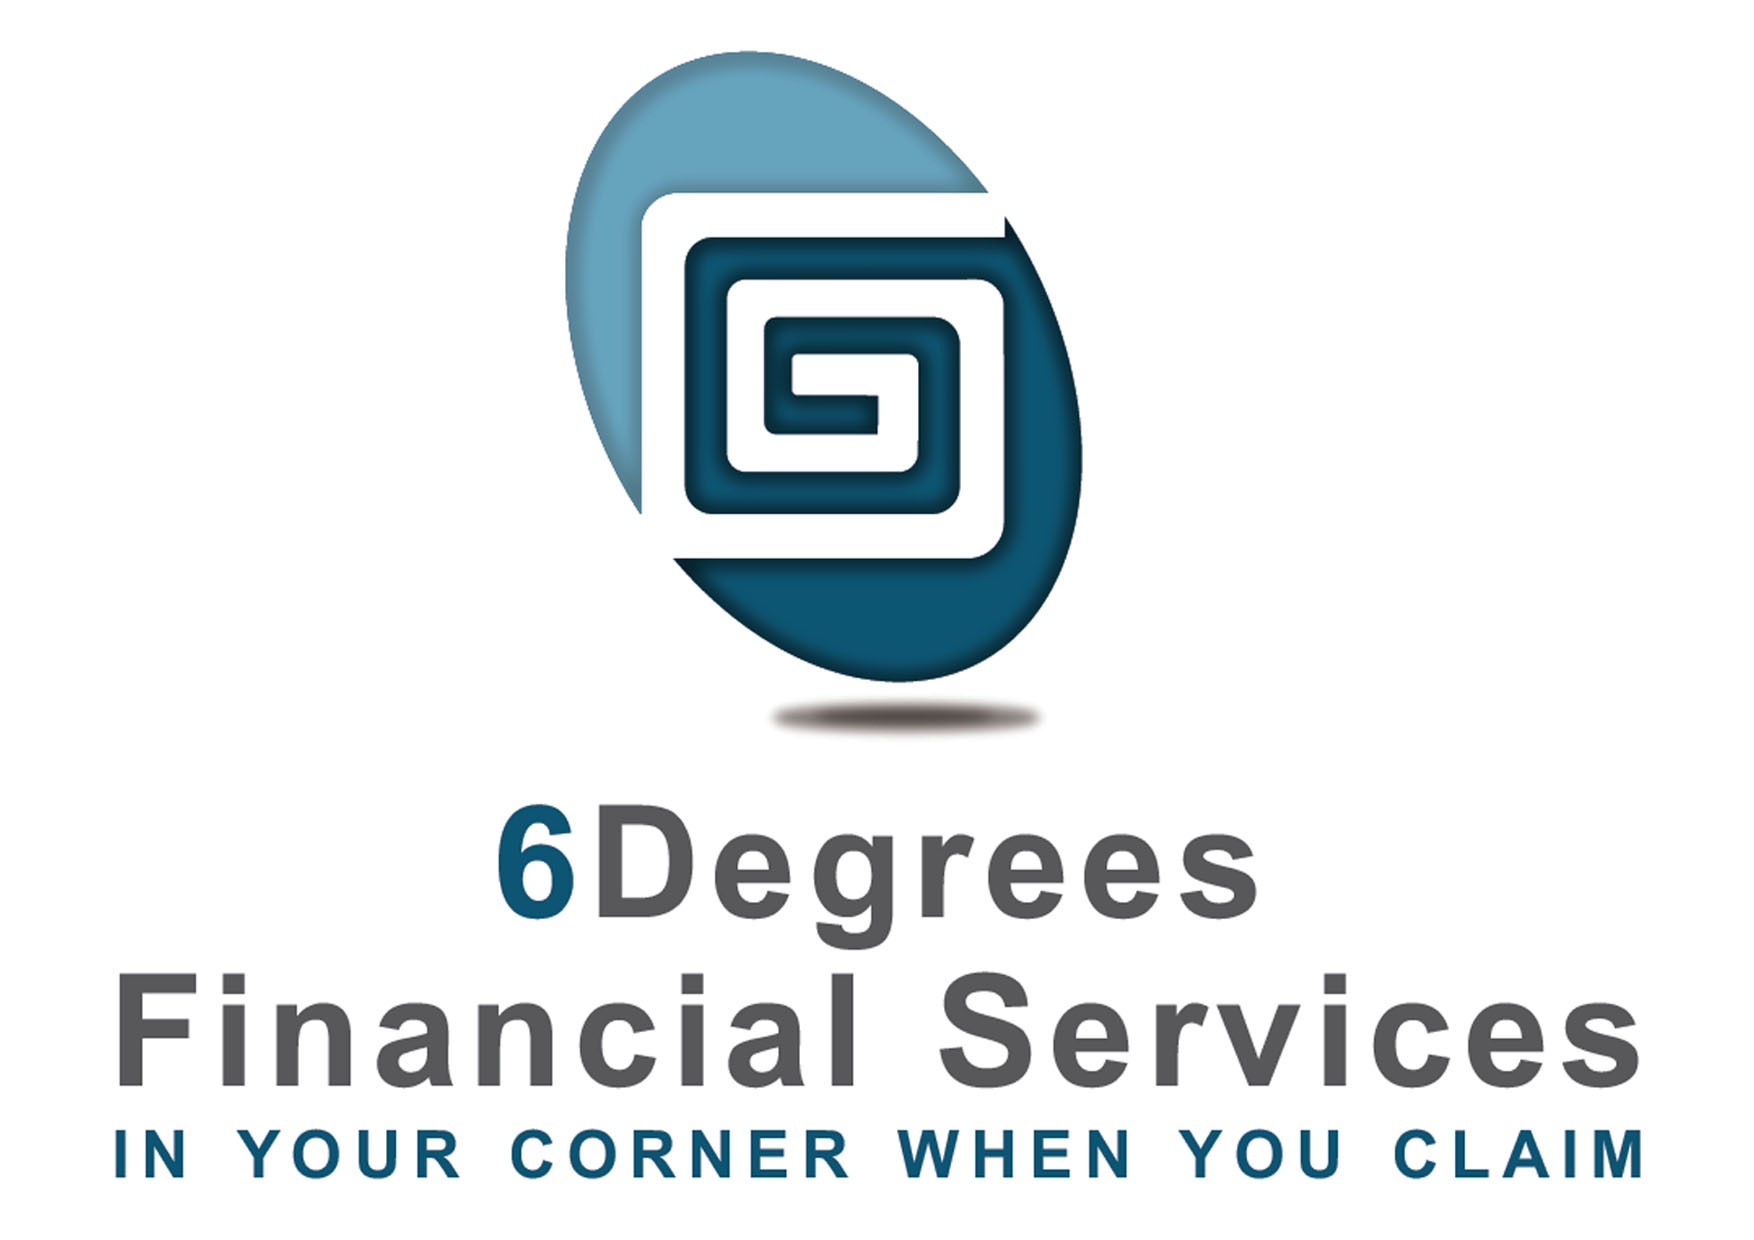 6 Degrees Financial Services